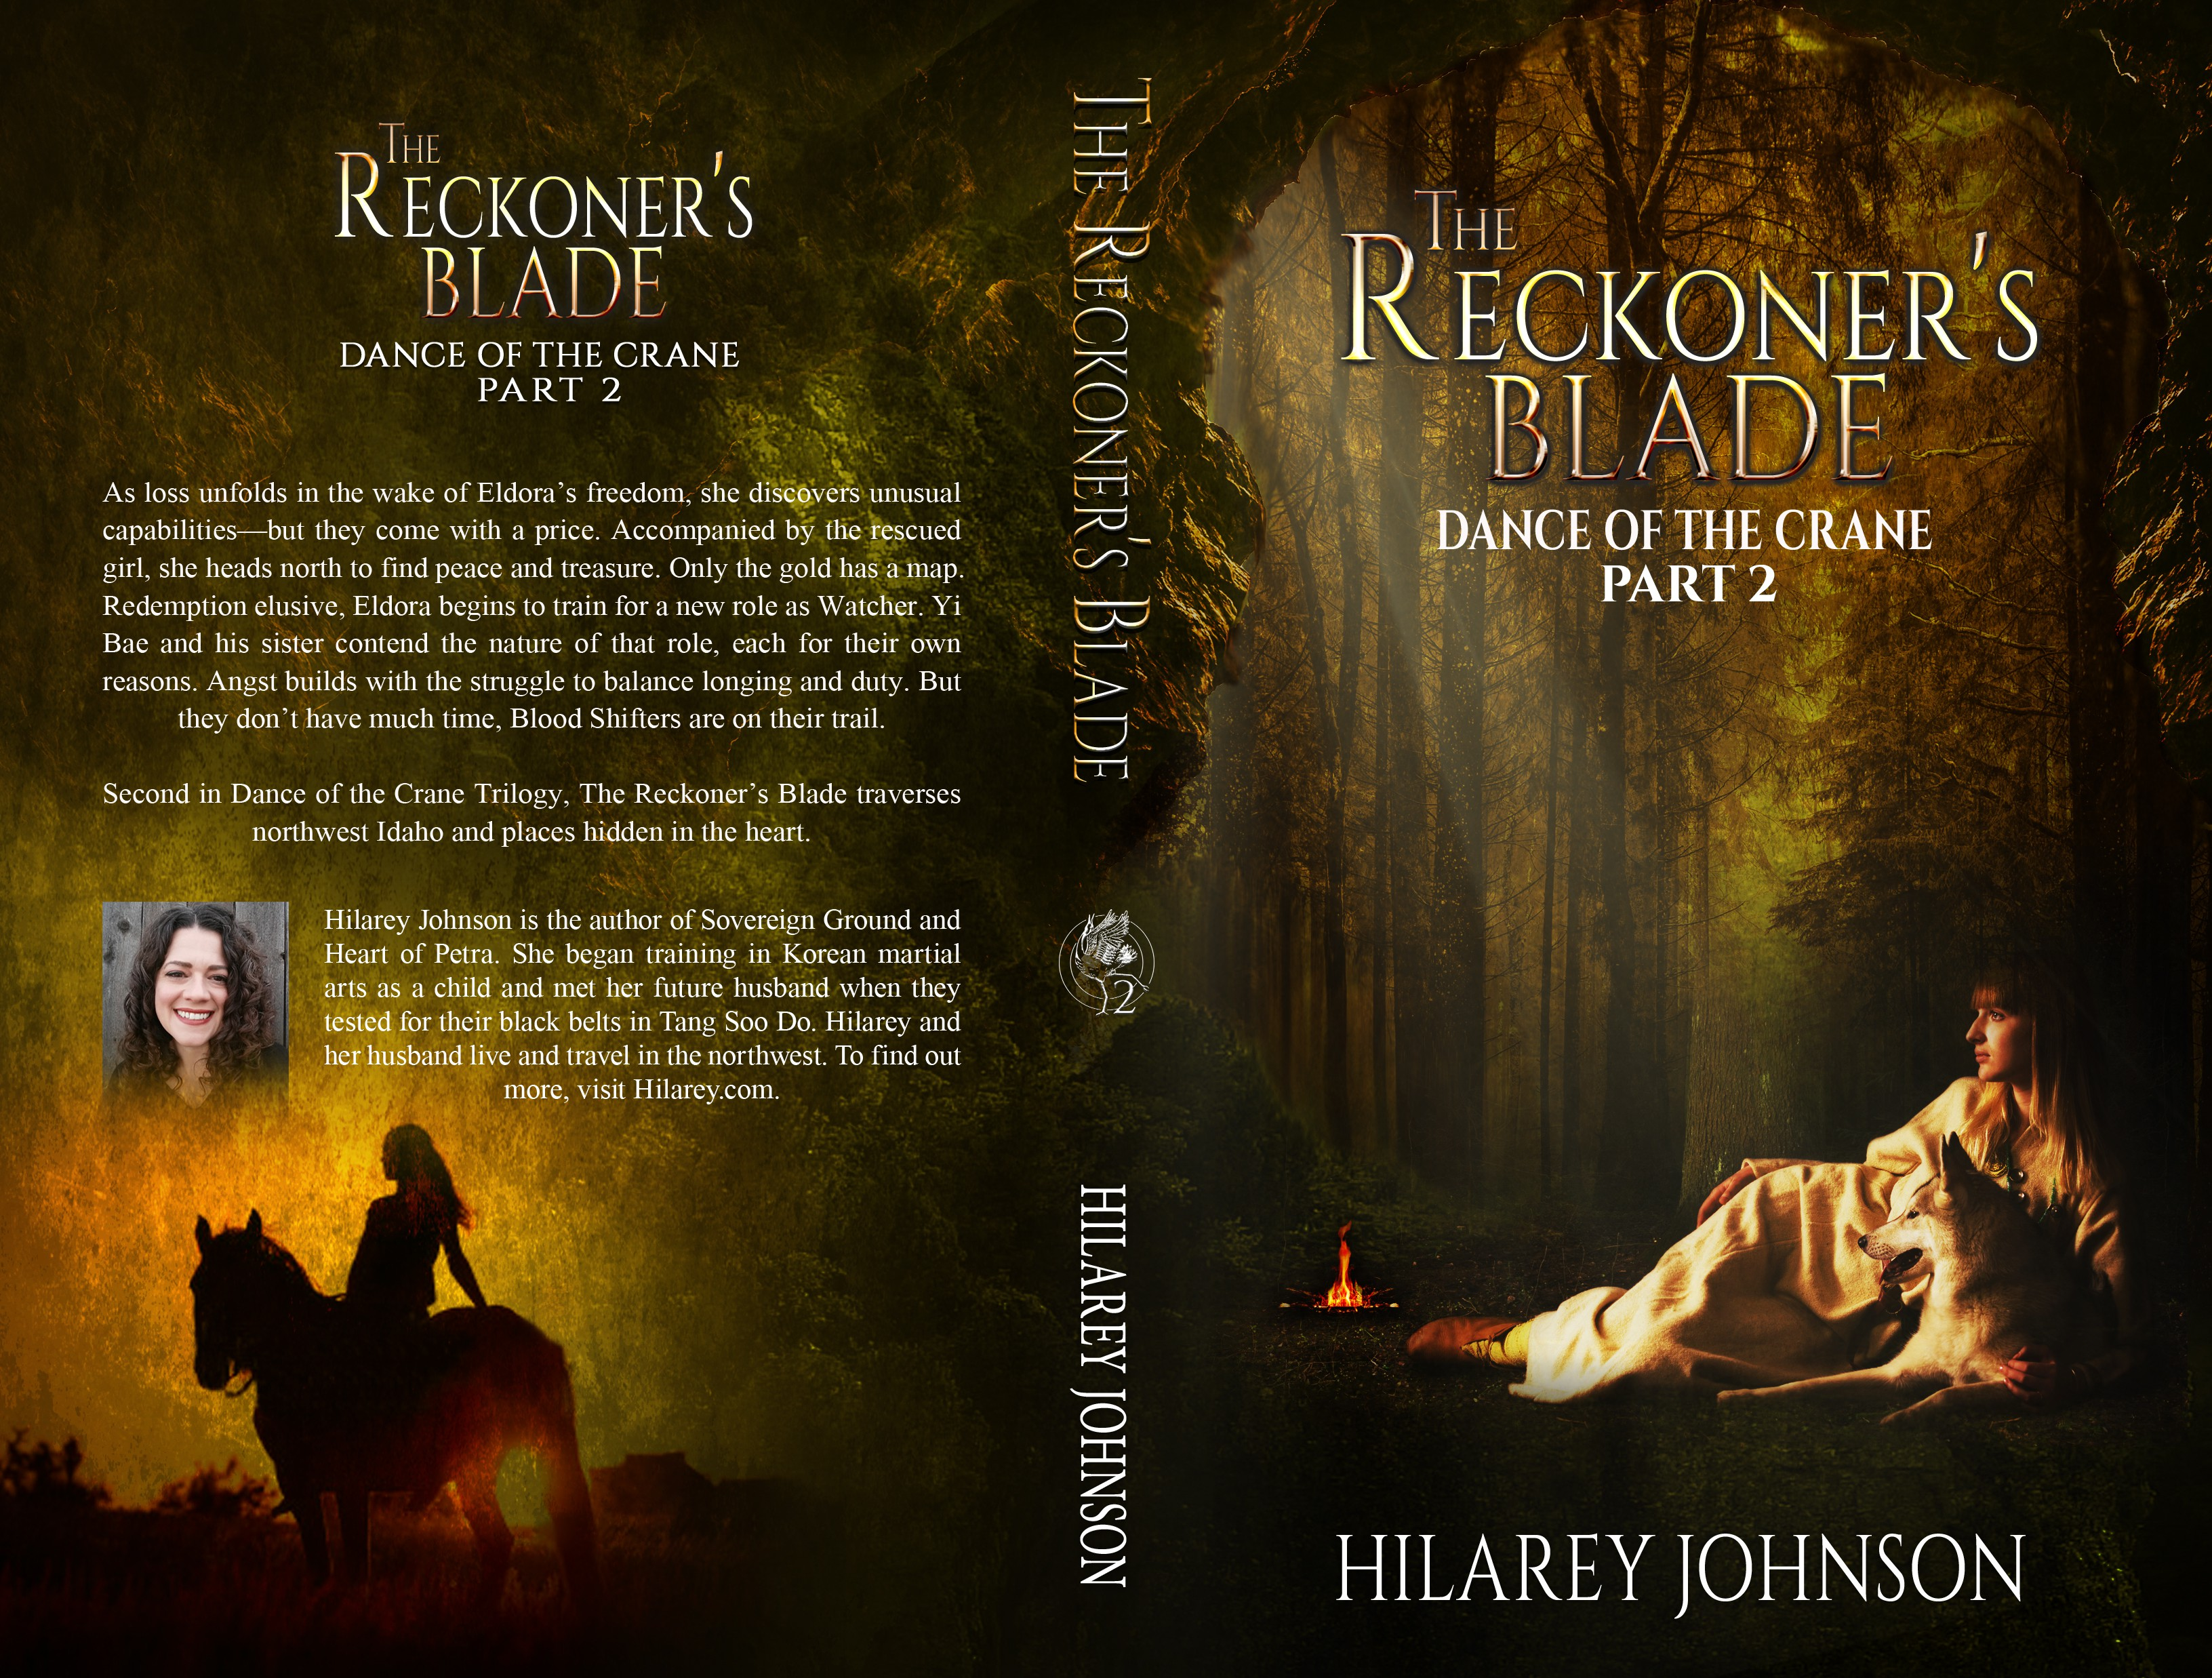 The Reckoner's Blade